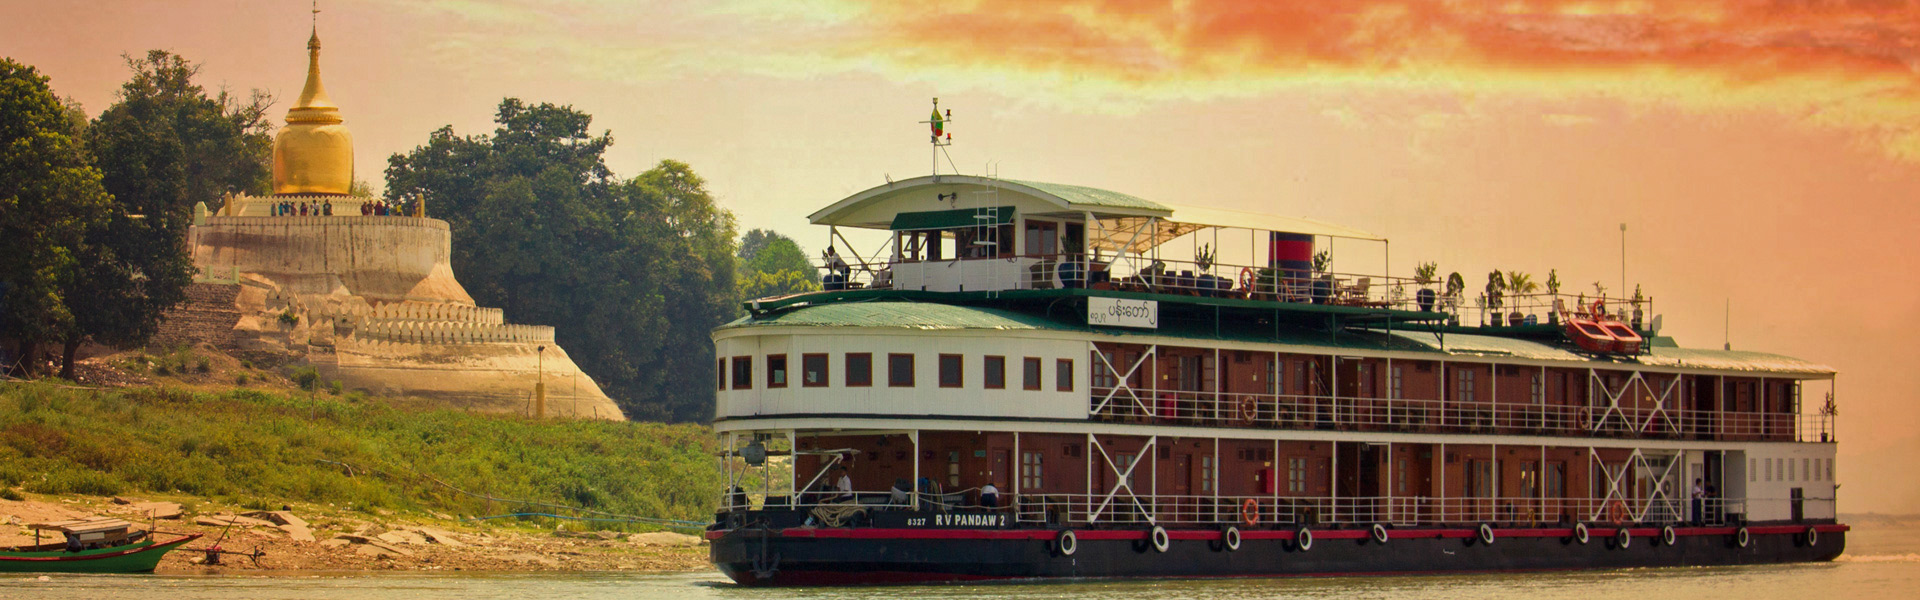 Experience Asia On A River Cruise